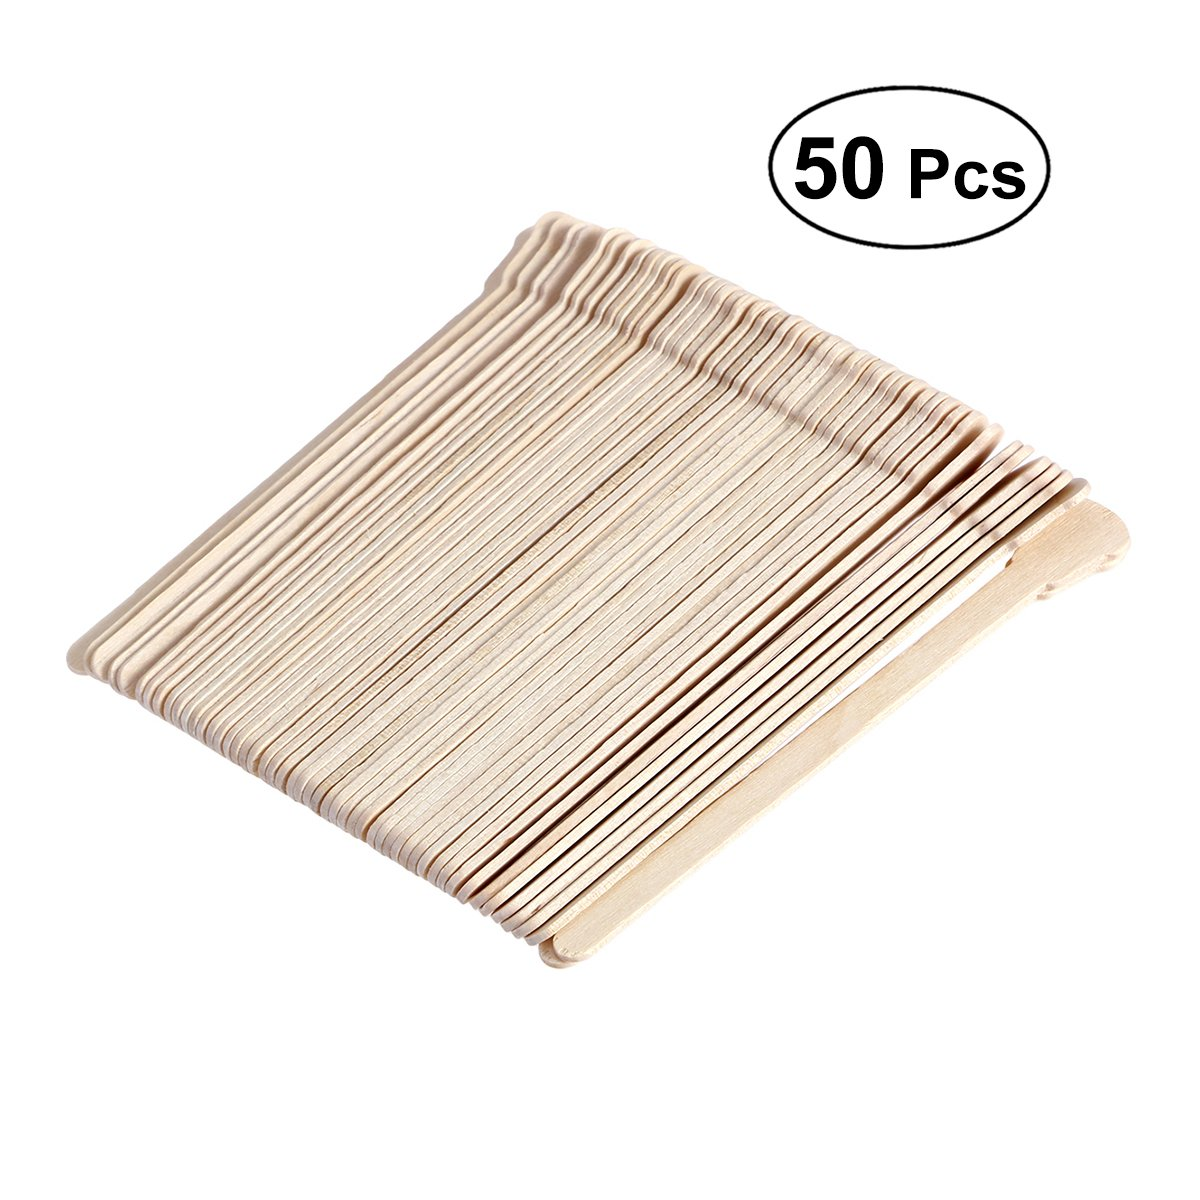 Frcolor Wooden Tongue Depressor Disposable Waxing Spatulas Wax Stick (Original Wooden Color), 50pcs